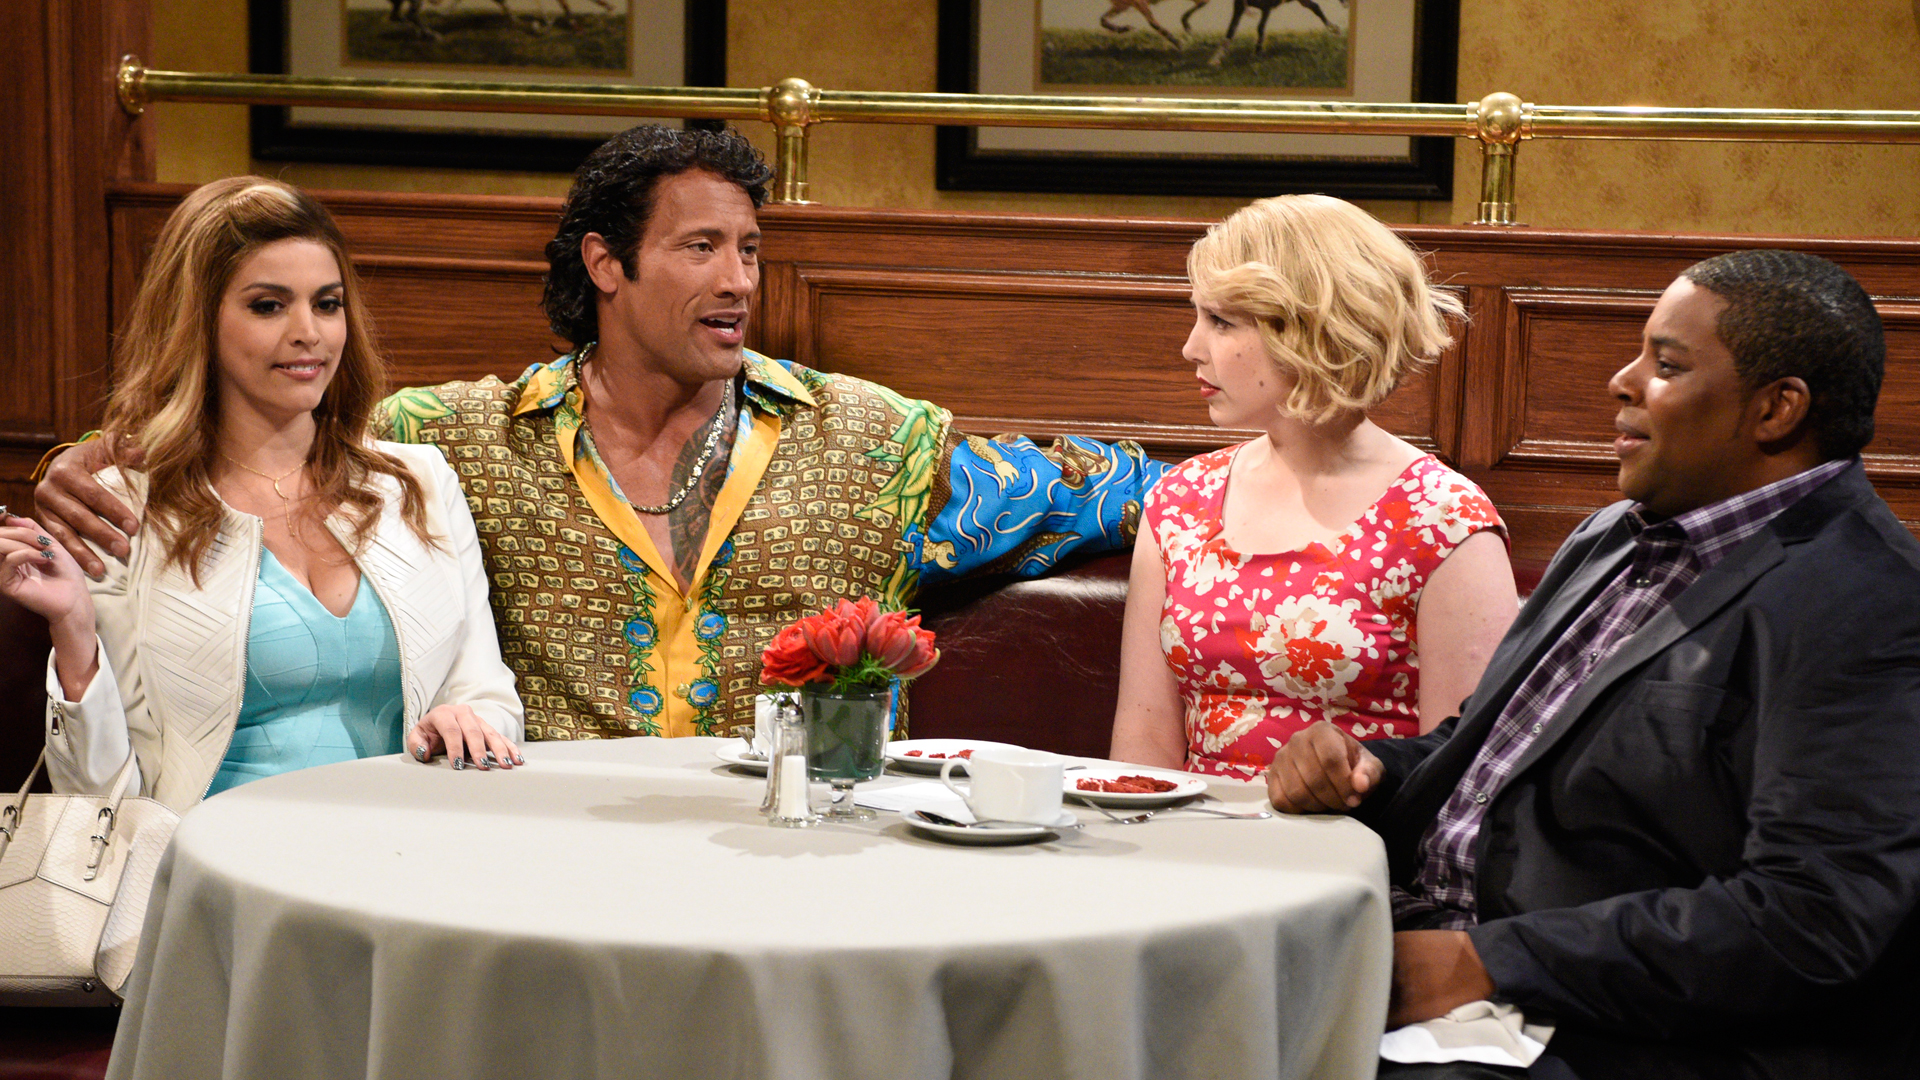 watch dinner date from saturday night live